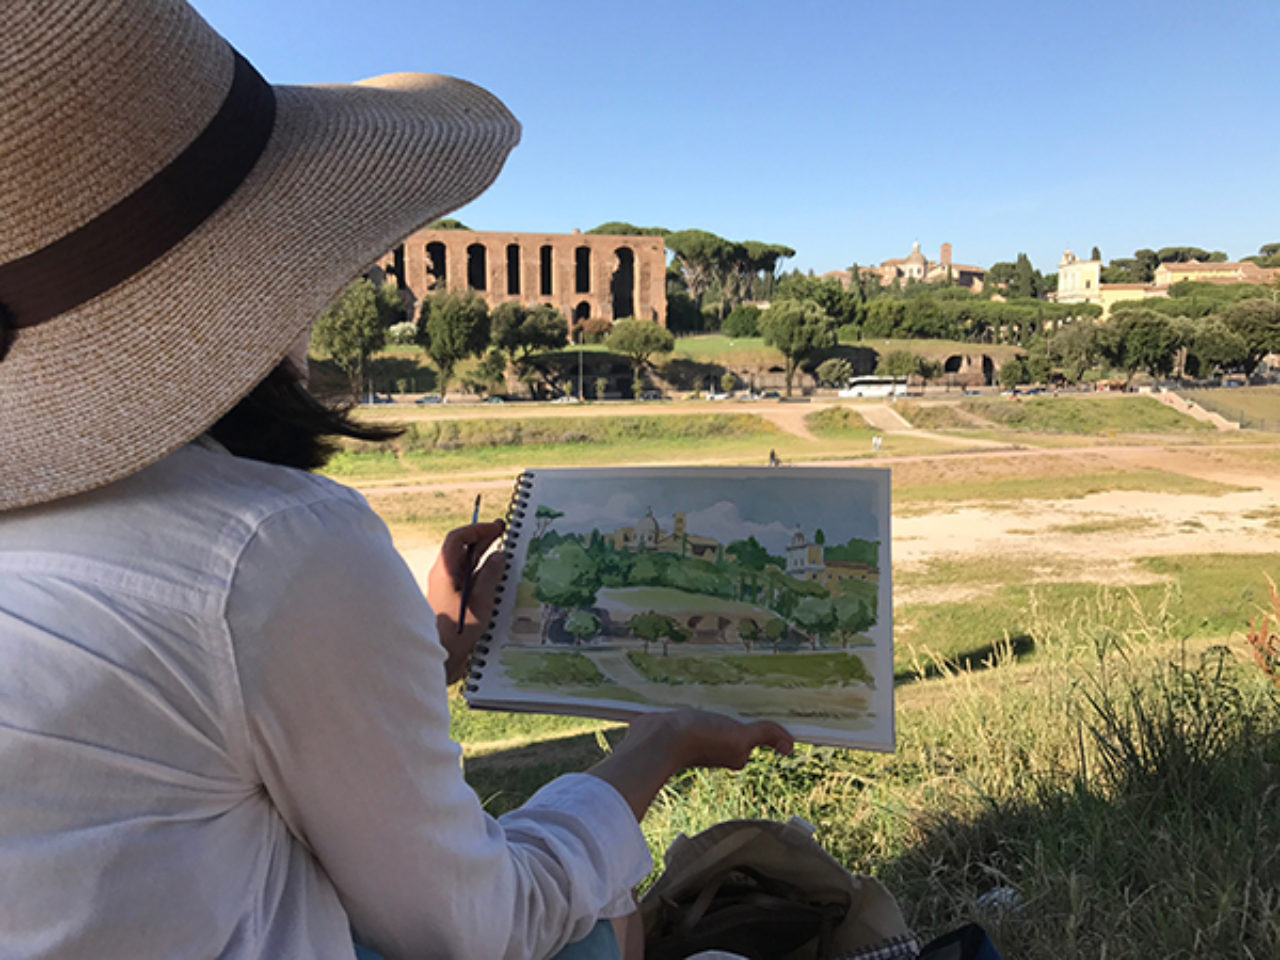 Tour participants sketch on location at Circus Maximus, overlooking Palatine Hill